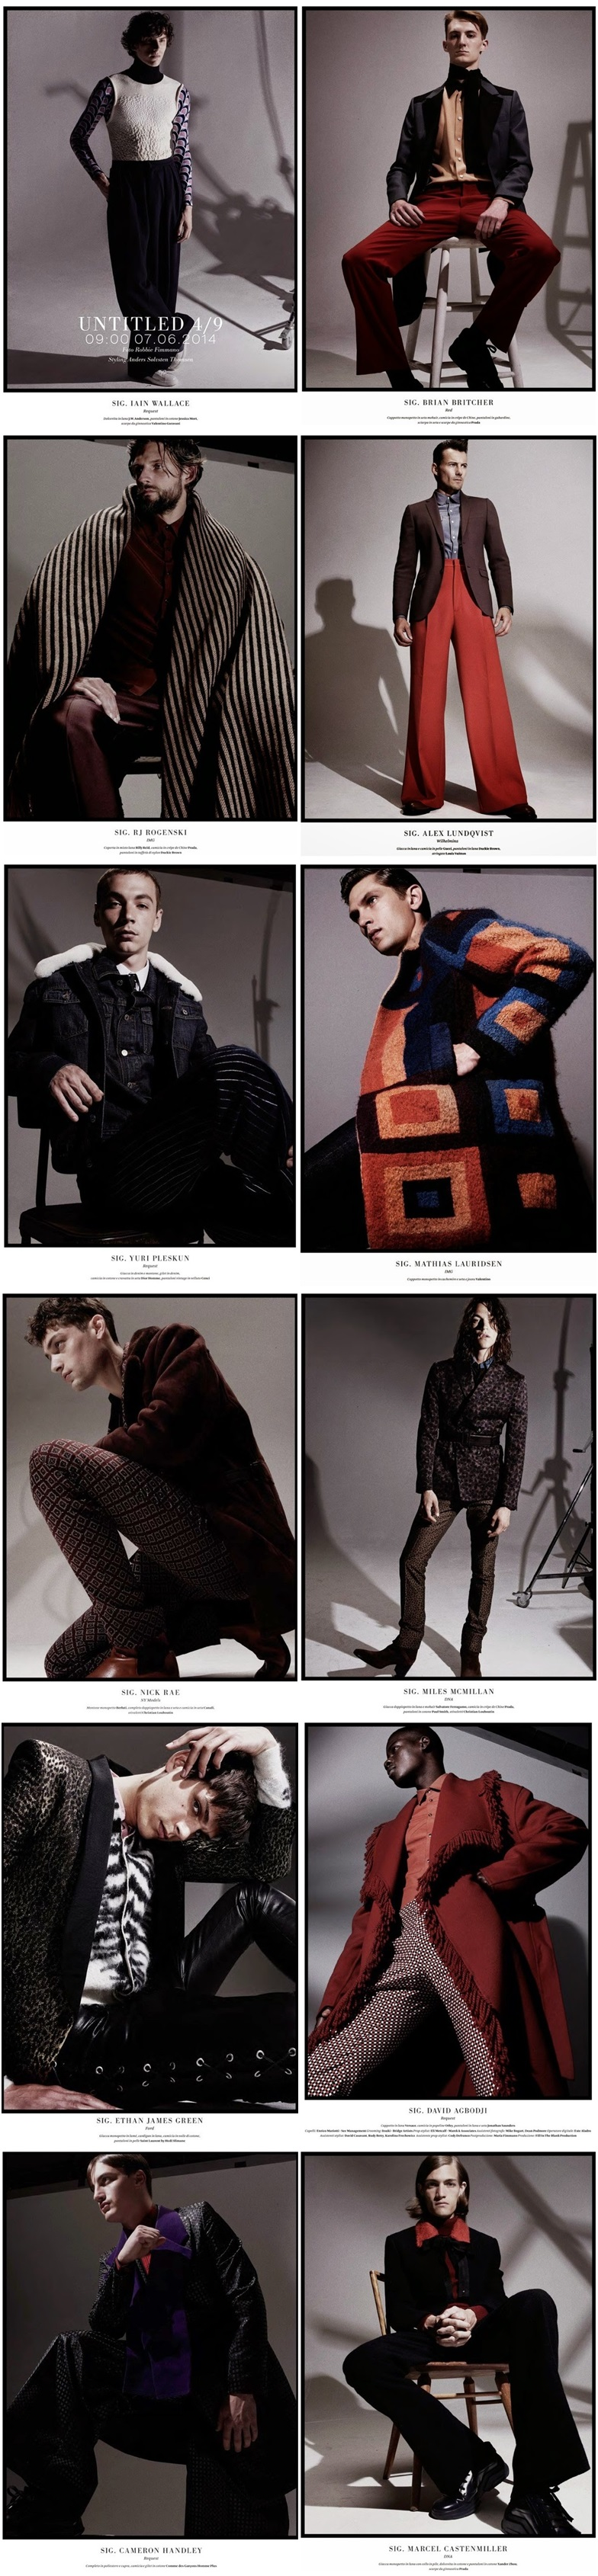 LOfficiel-Hommes-Italia-fashion4addicts